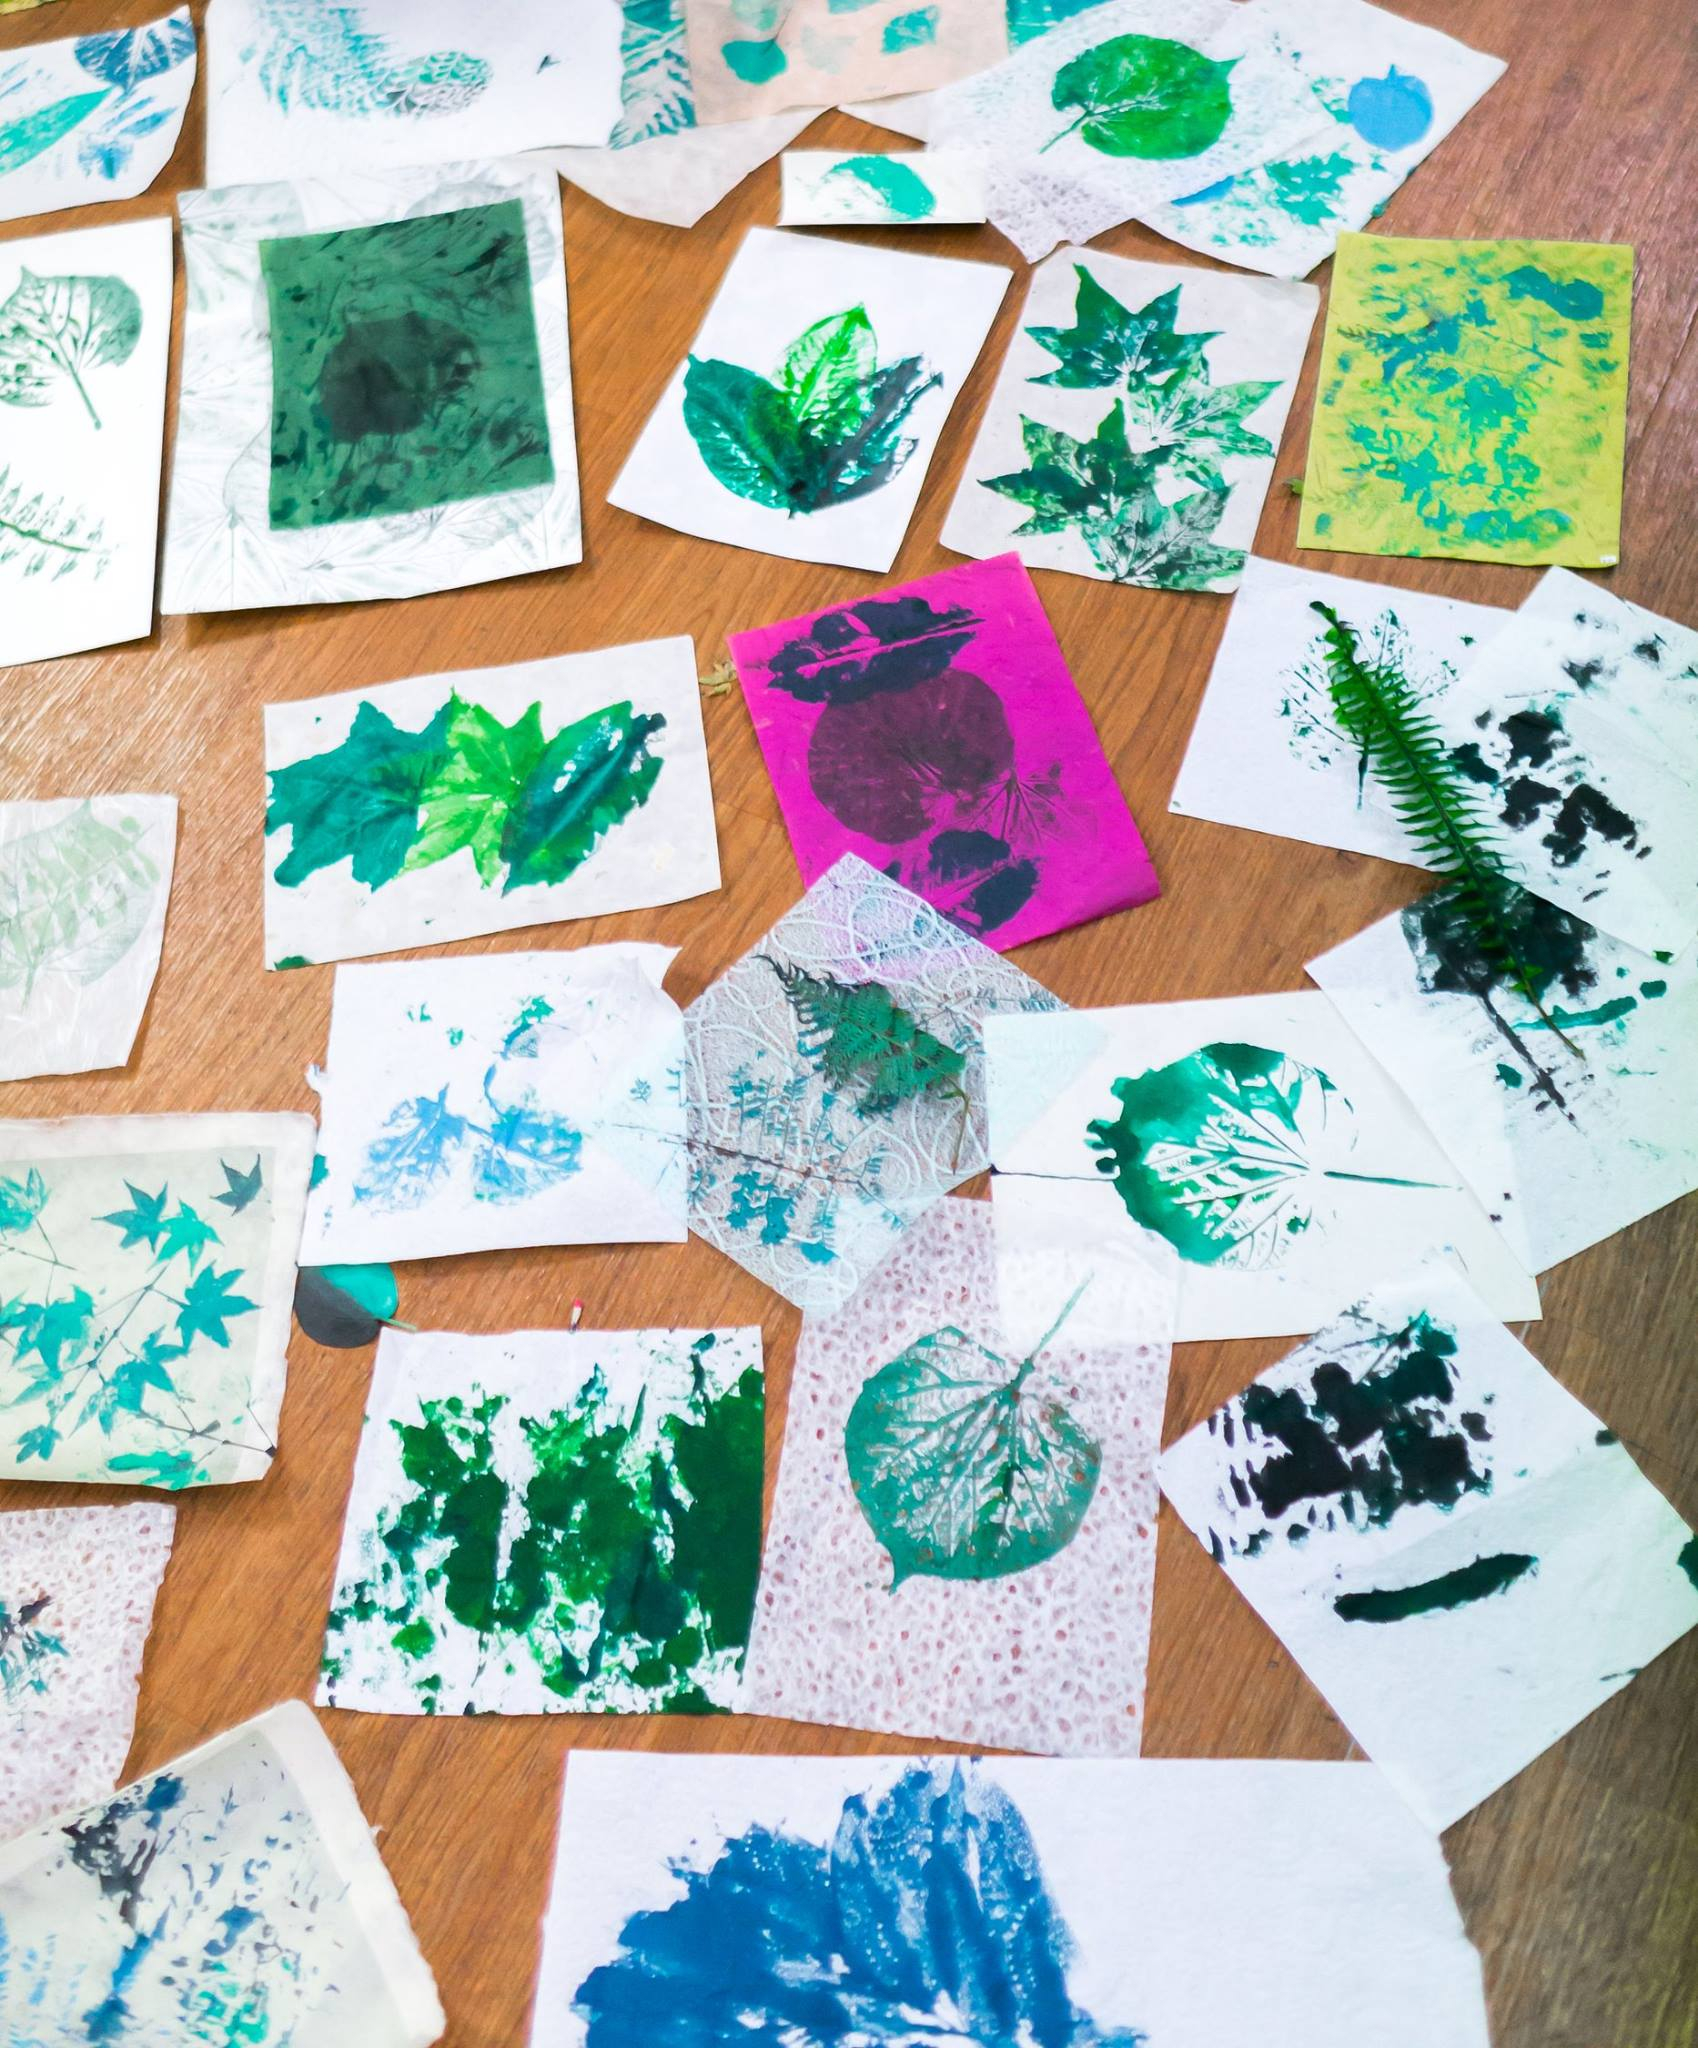 Collection of printed leaves from the creative workshop facilitated by artist Louise Trevitt